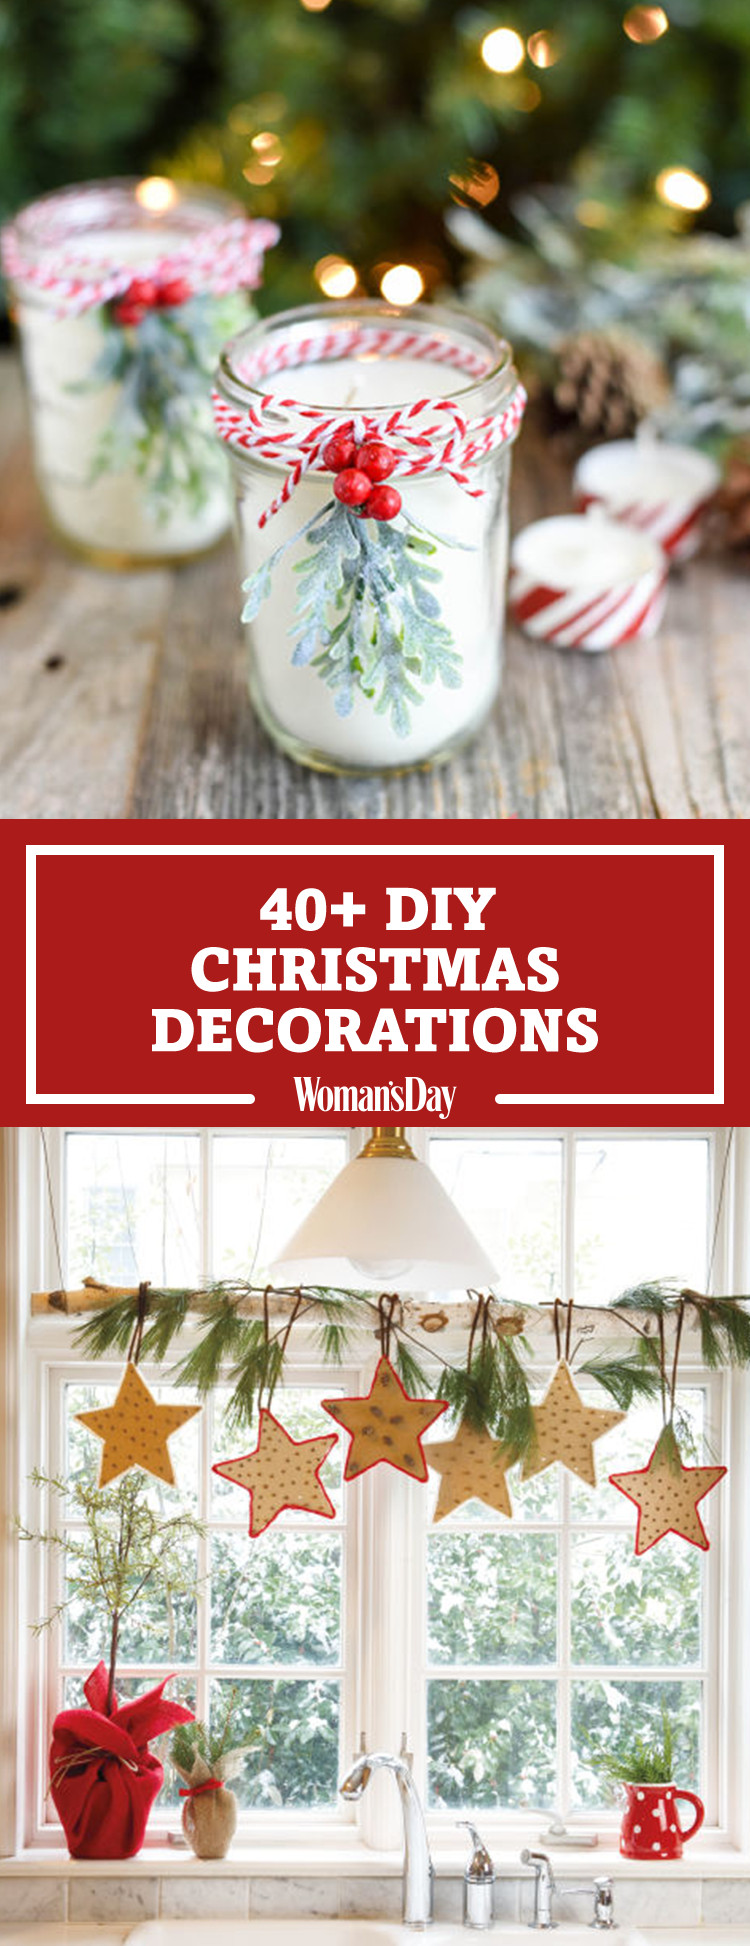 Best ideas about Christmas DIY Decoration Ideas . Save or Pin 47 Easy DIY Christmas Decorations Homemade Ideas for Now.